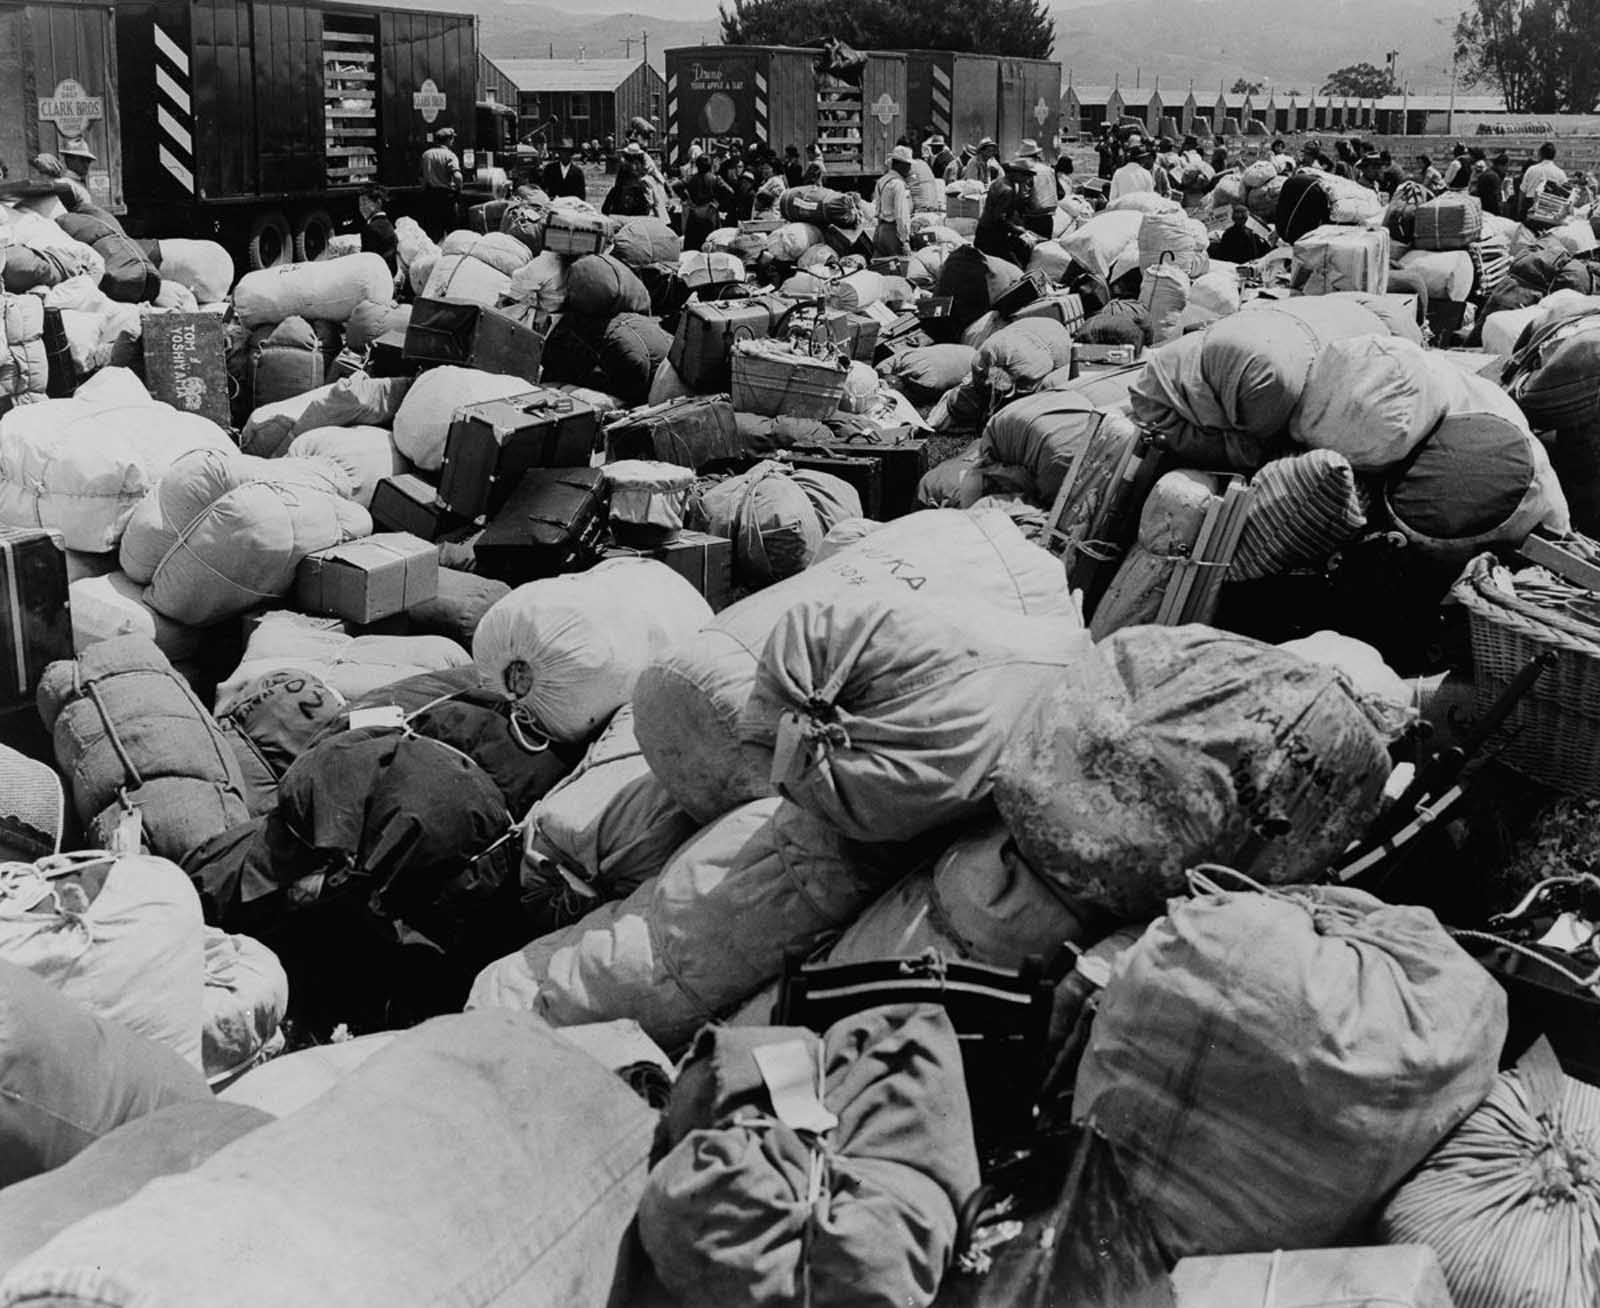 Evacuees' baggage is piled up for transport at an assembly center in Salinas, California.